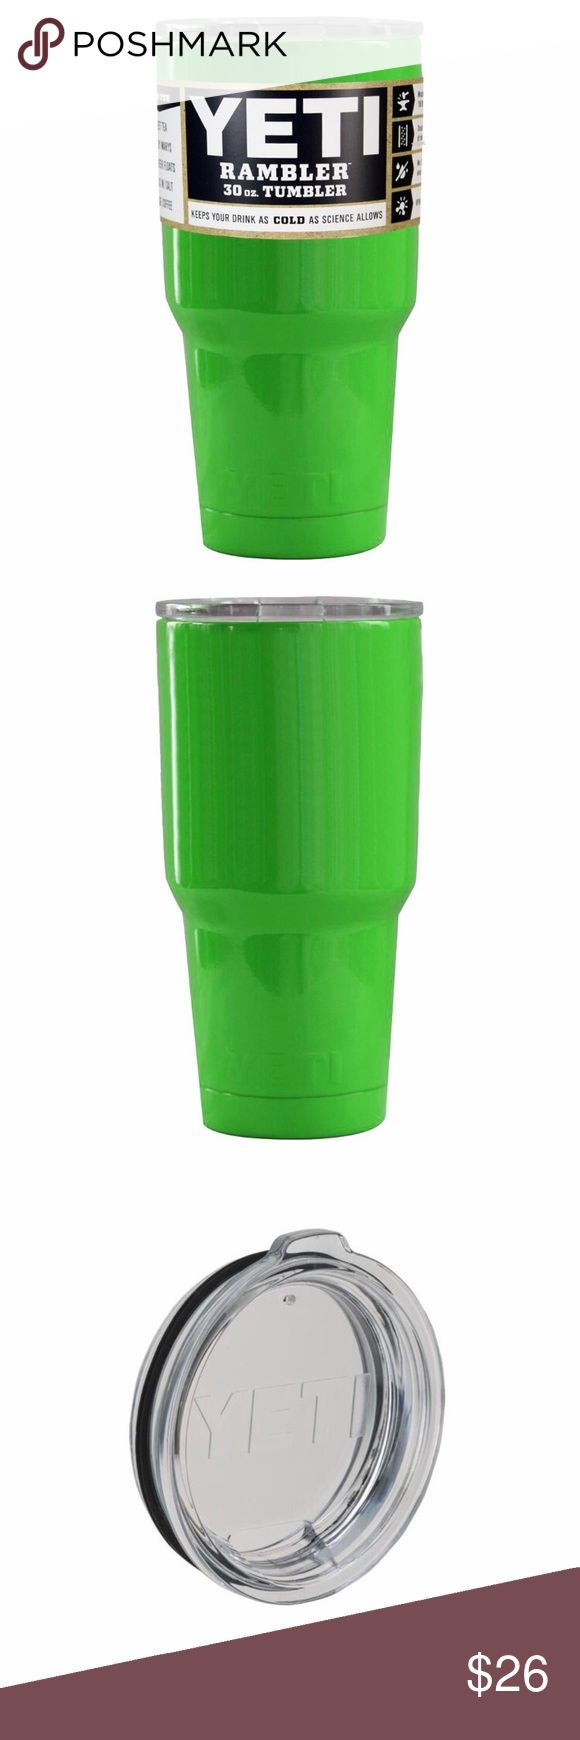 BRIGHT GREEN YETI 30OZ TUMBLER 2017 NEW YETI TUMBLERS 30oz BRIGHT GREEN    30oz YETI TUMBLER, YETI LID, Original Yeti sticker, & YETI BOOKLET  • Double Wall Vacuum Insulation to Keep your drink Cold. • 18/8 Stainless Steel Durable Kitchen-Grade Steel.  • The outside stays dry. No need for a coaster. • Tight Seal Heavy duty lid seal locks in the cold. • Keeps Ice Longer twice as long as plastic tumblers. Powder Coated. Hand was only. YETI Accessories